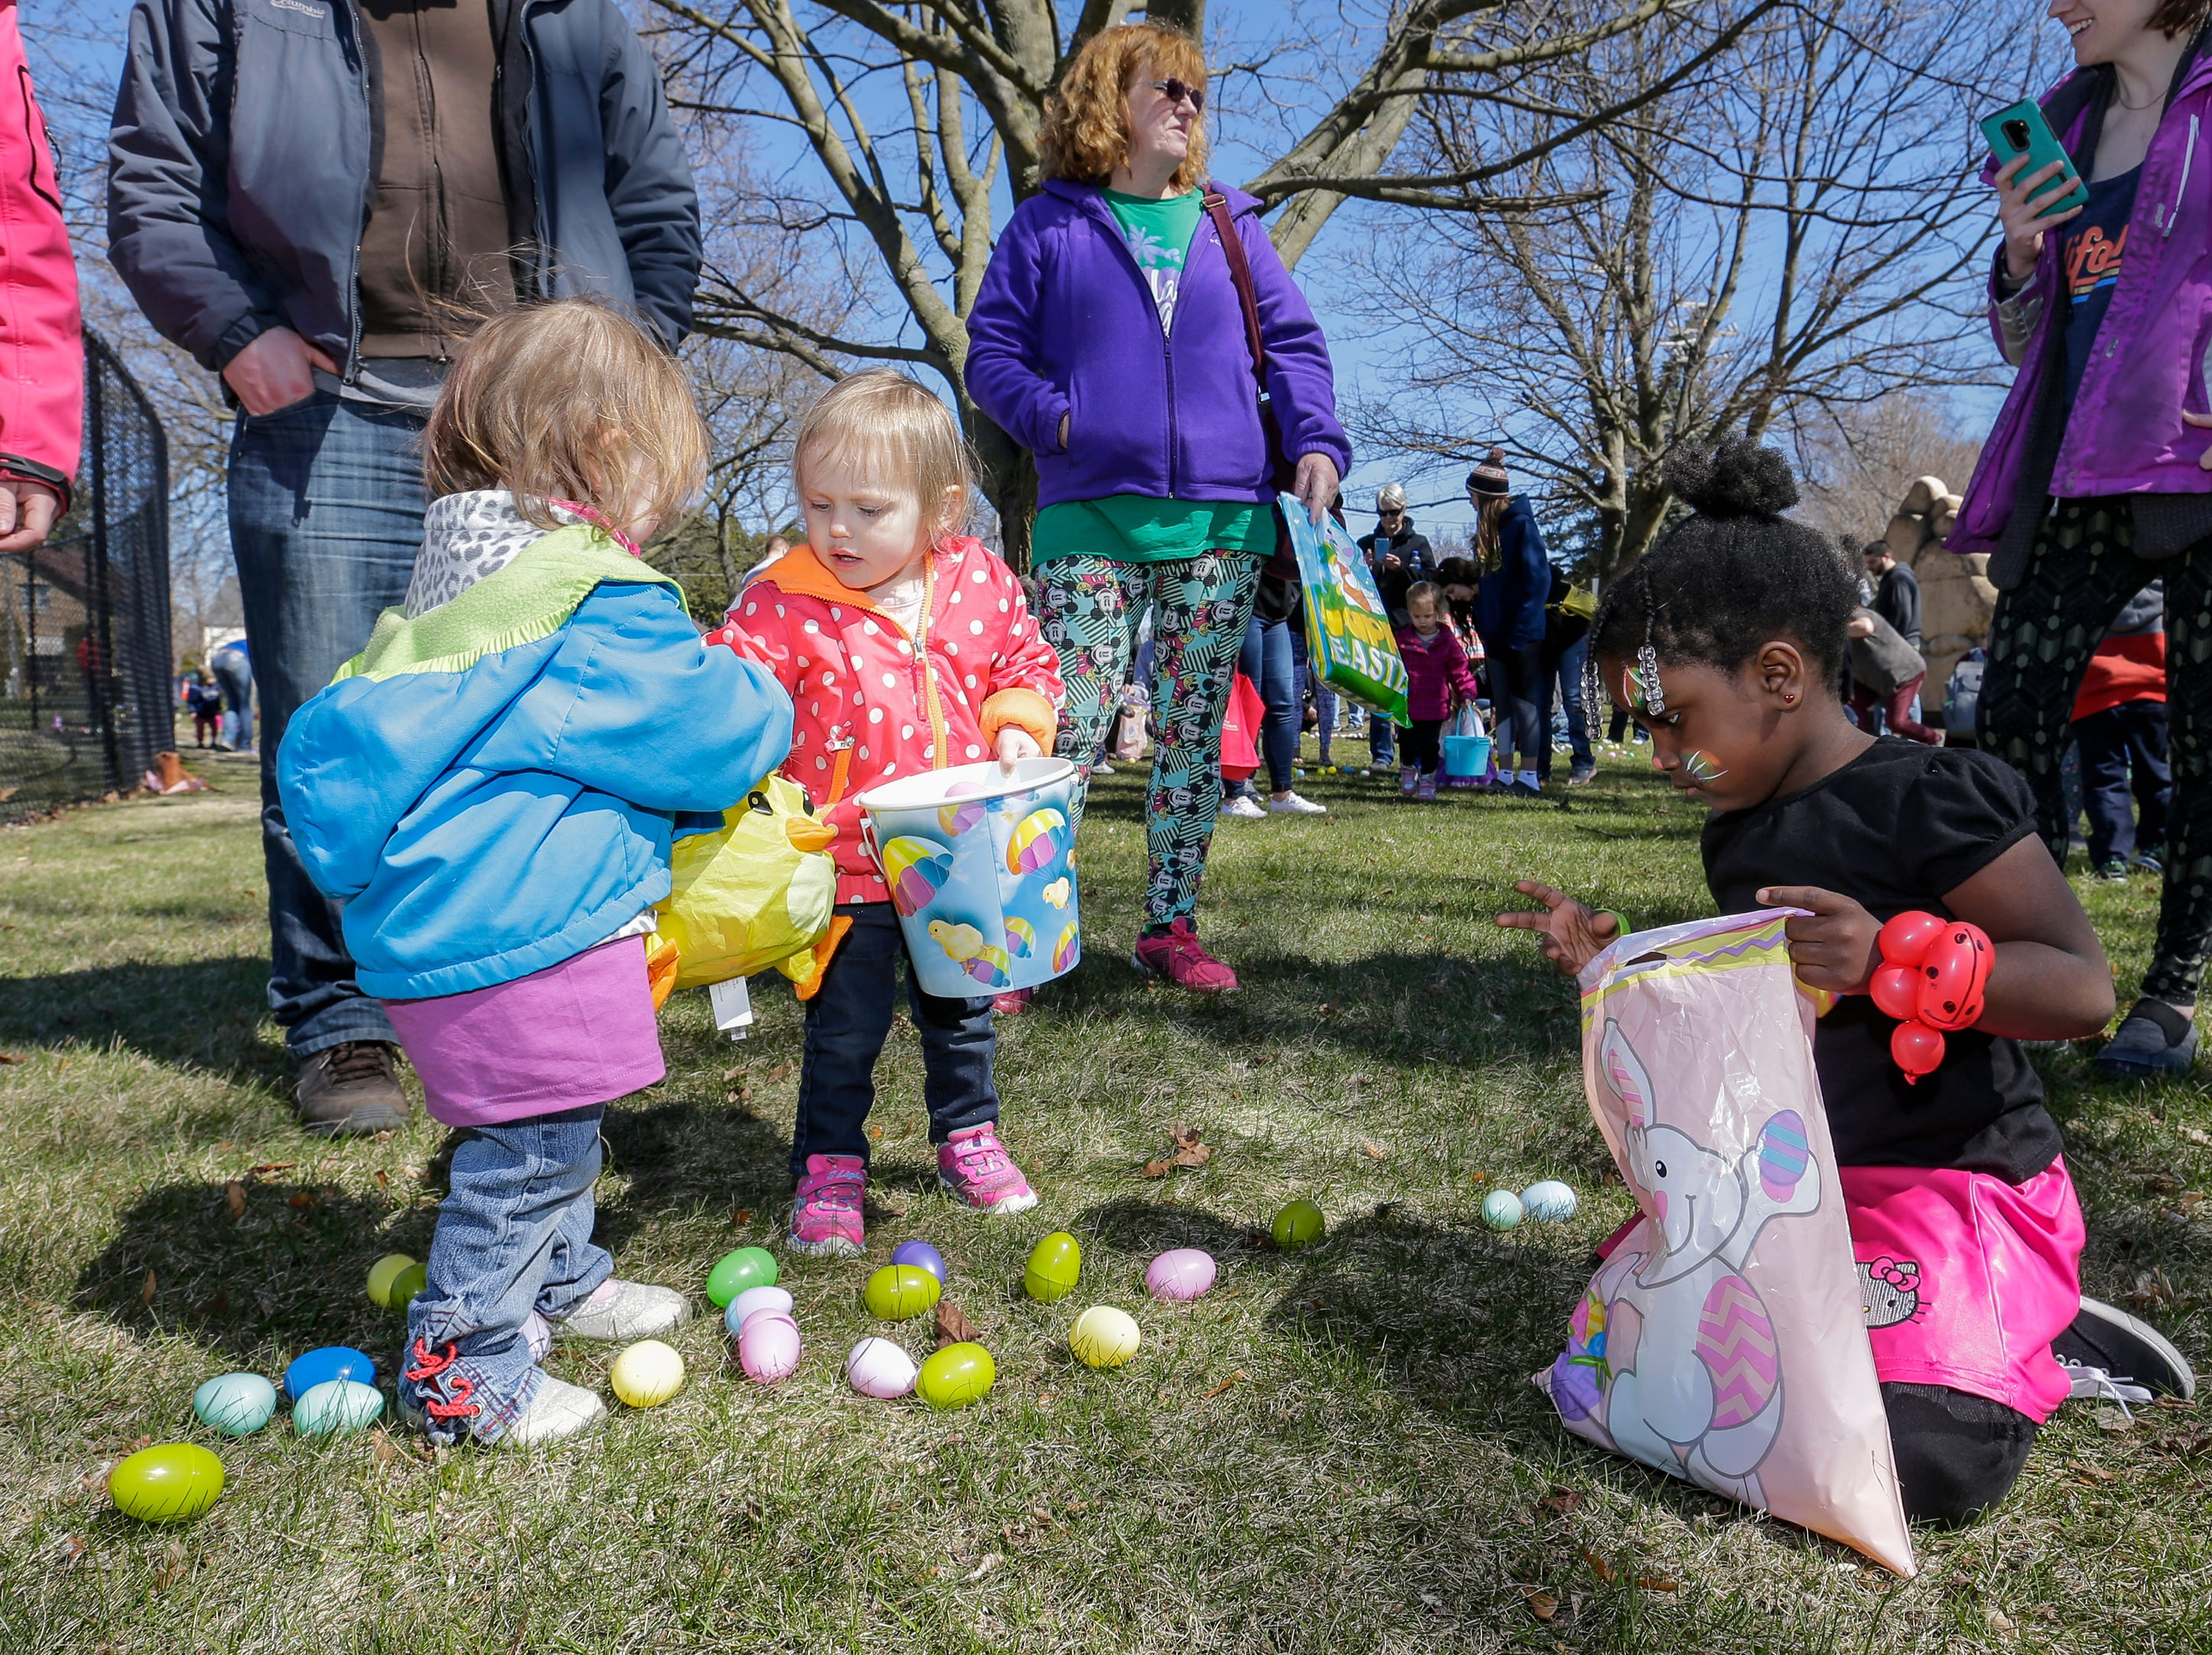 From left, Emery Meives, 2; Sophia Kuehl, 2, and DeRosalind Spencer, 4, grab eggs during the Easter Eggstravaganza at Citizen Park Saturday, April 20, 2019, in Manitowoc, Wis. Joshua Clark/USA TODAY NETWORK-Wisconsin